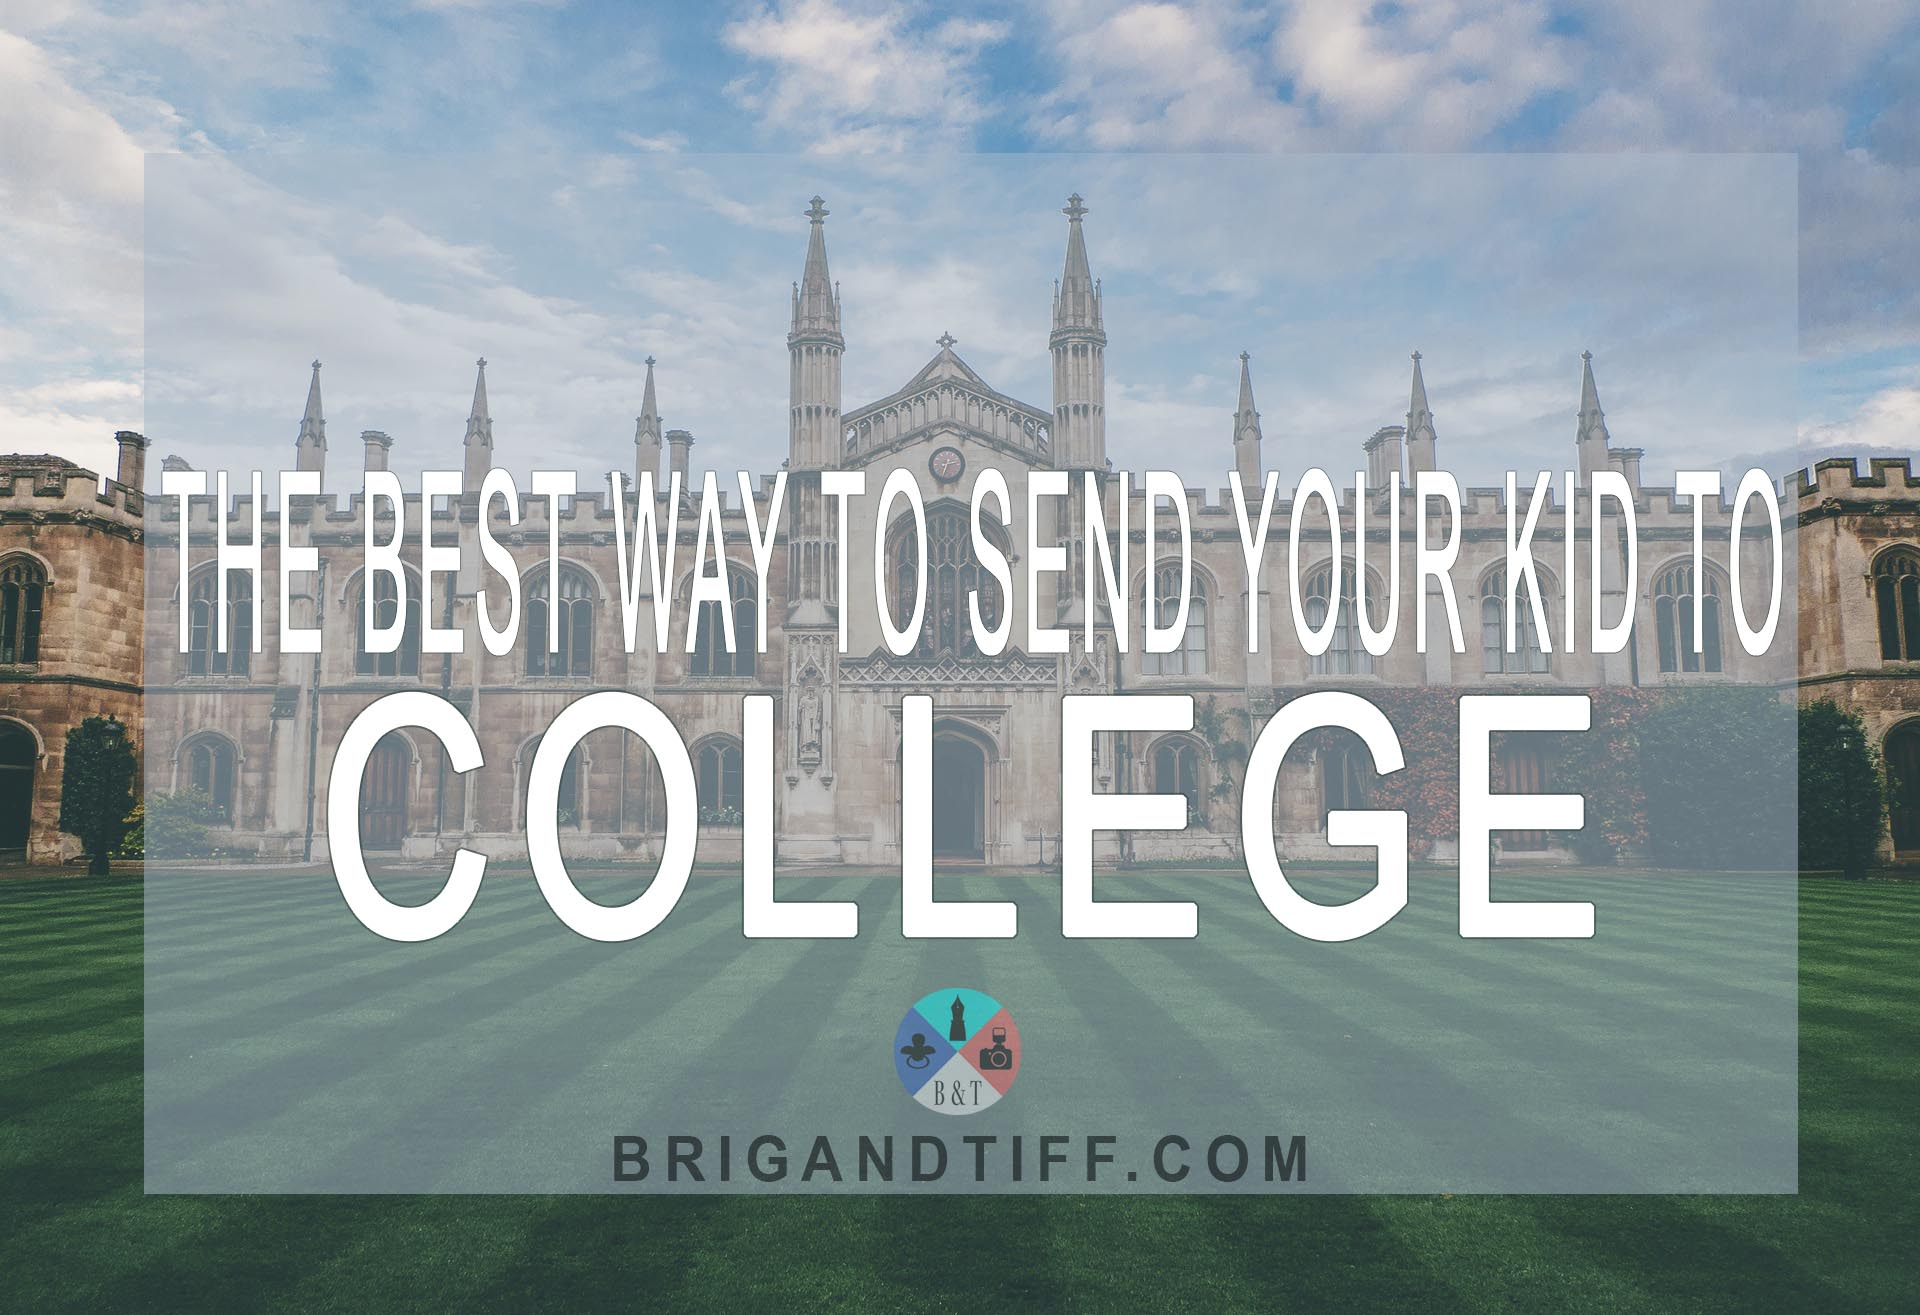 The Best Way to Send Your Kid to College